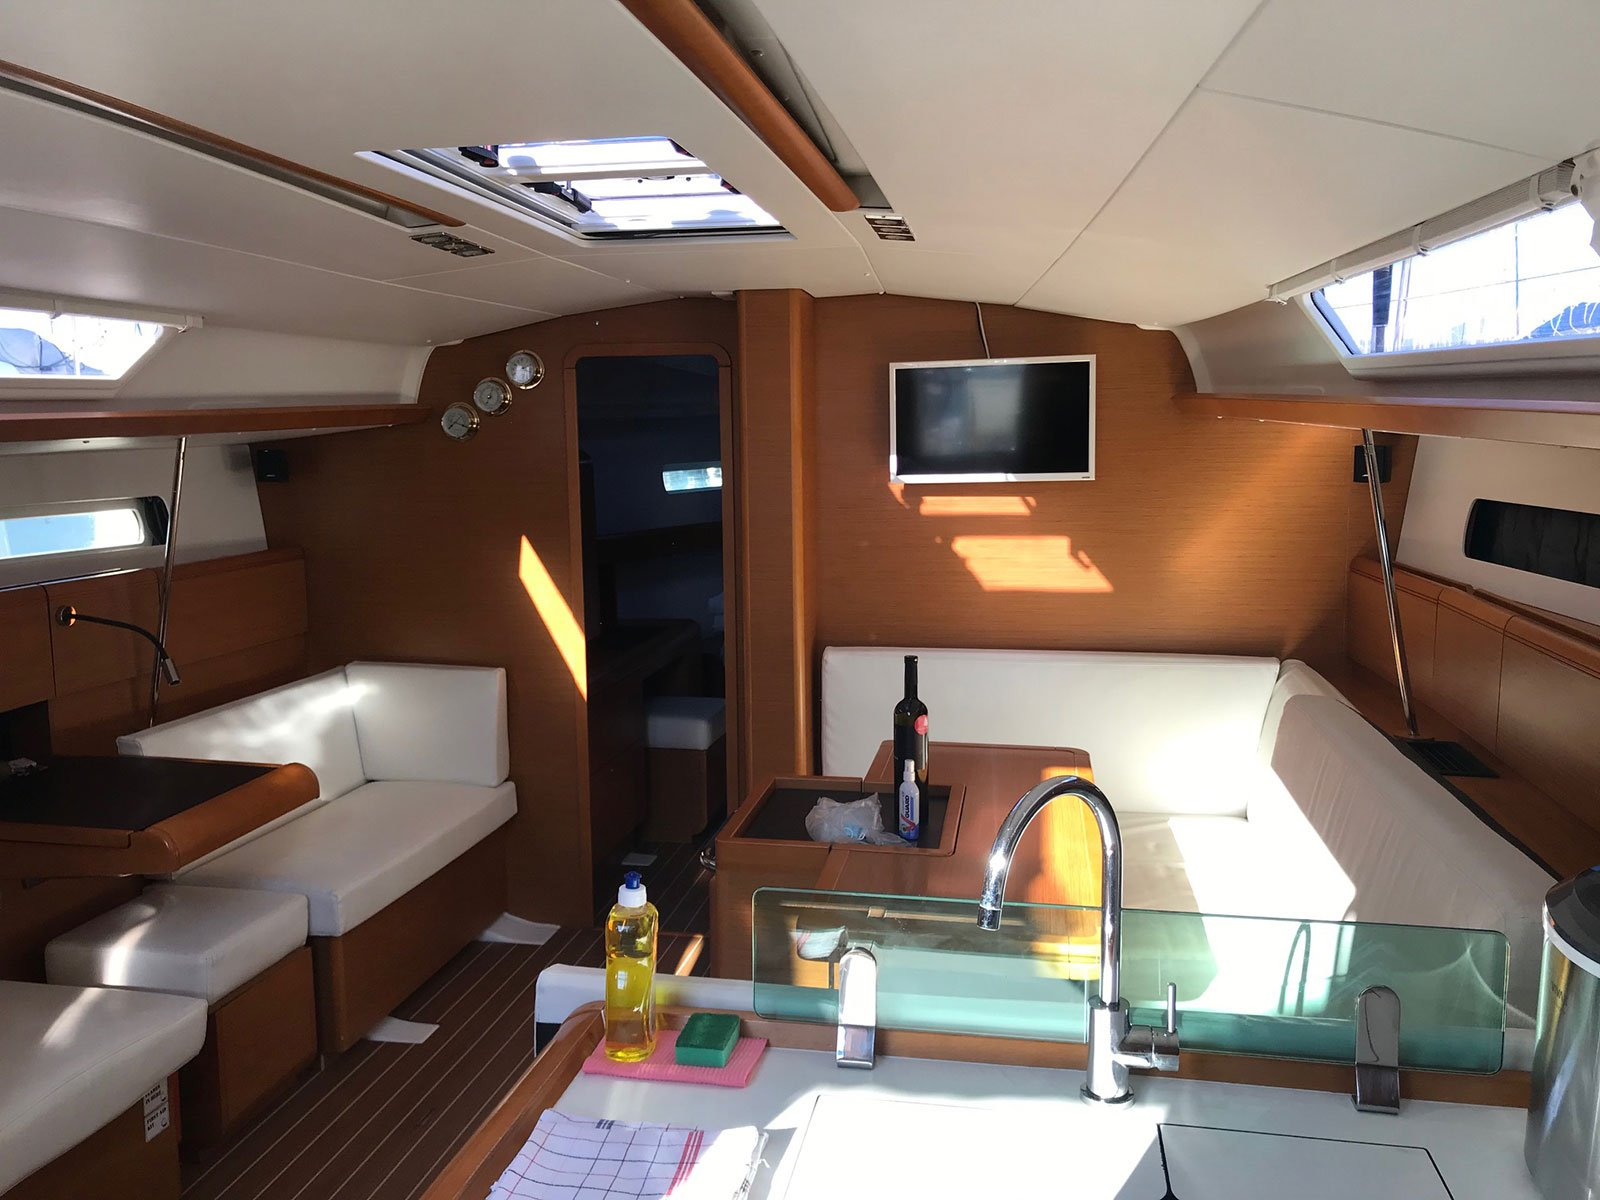 Sun Odyssey 449 owner version (SPRING SONG) Interior image - 8